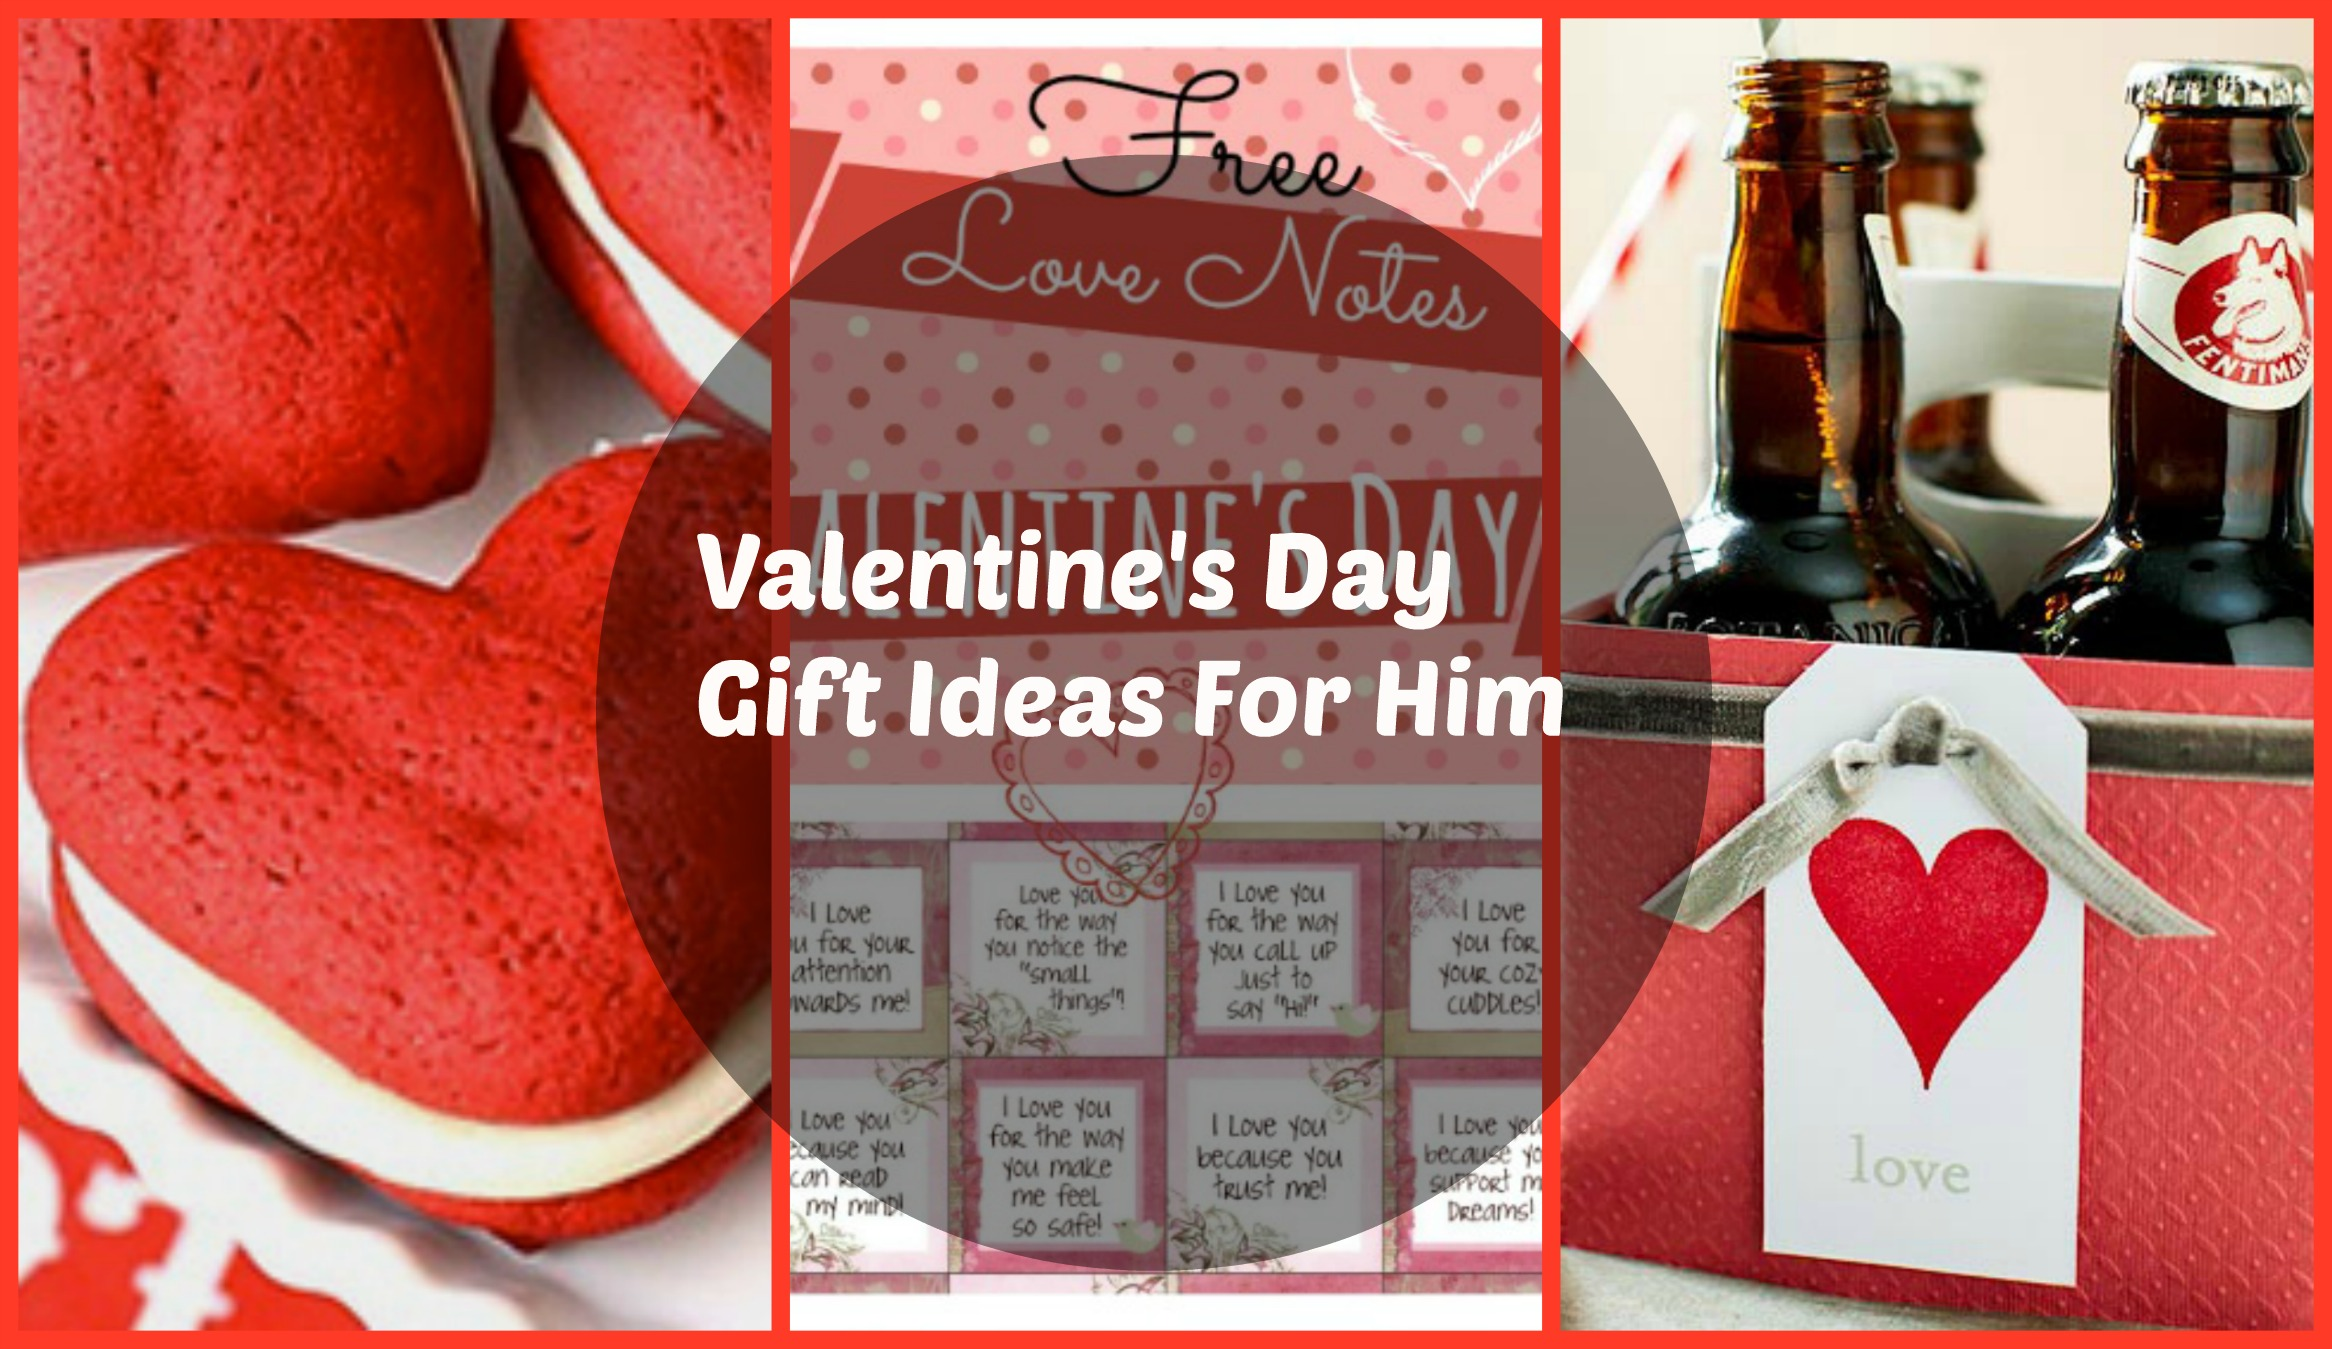 Valentines-Day-Gift-Ideas-for-Him-.jpg